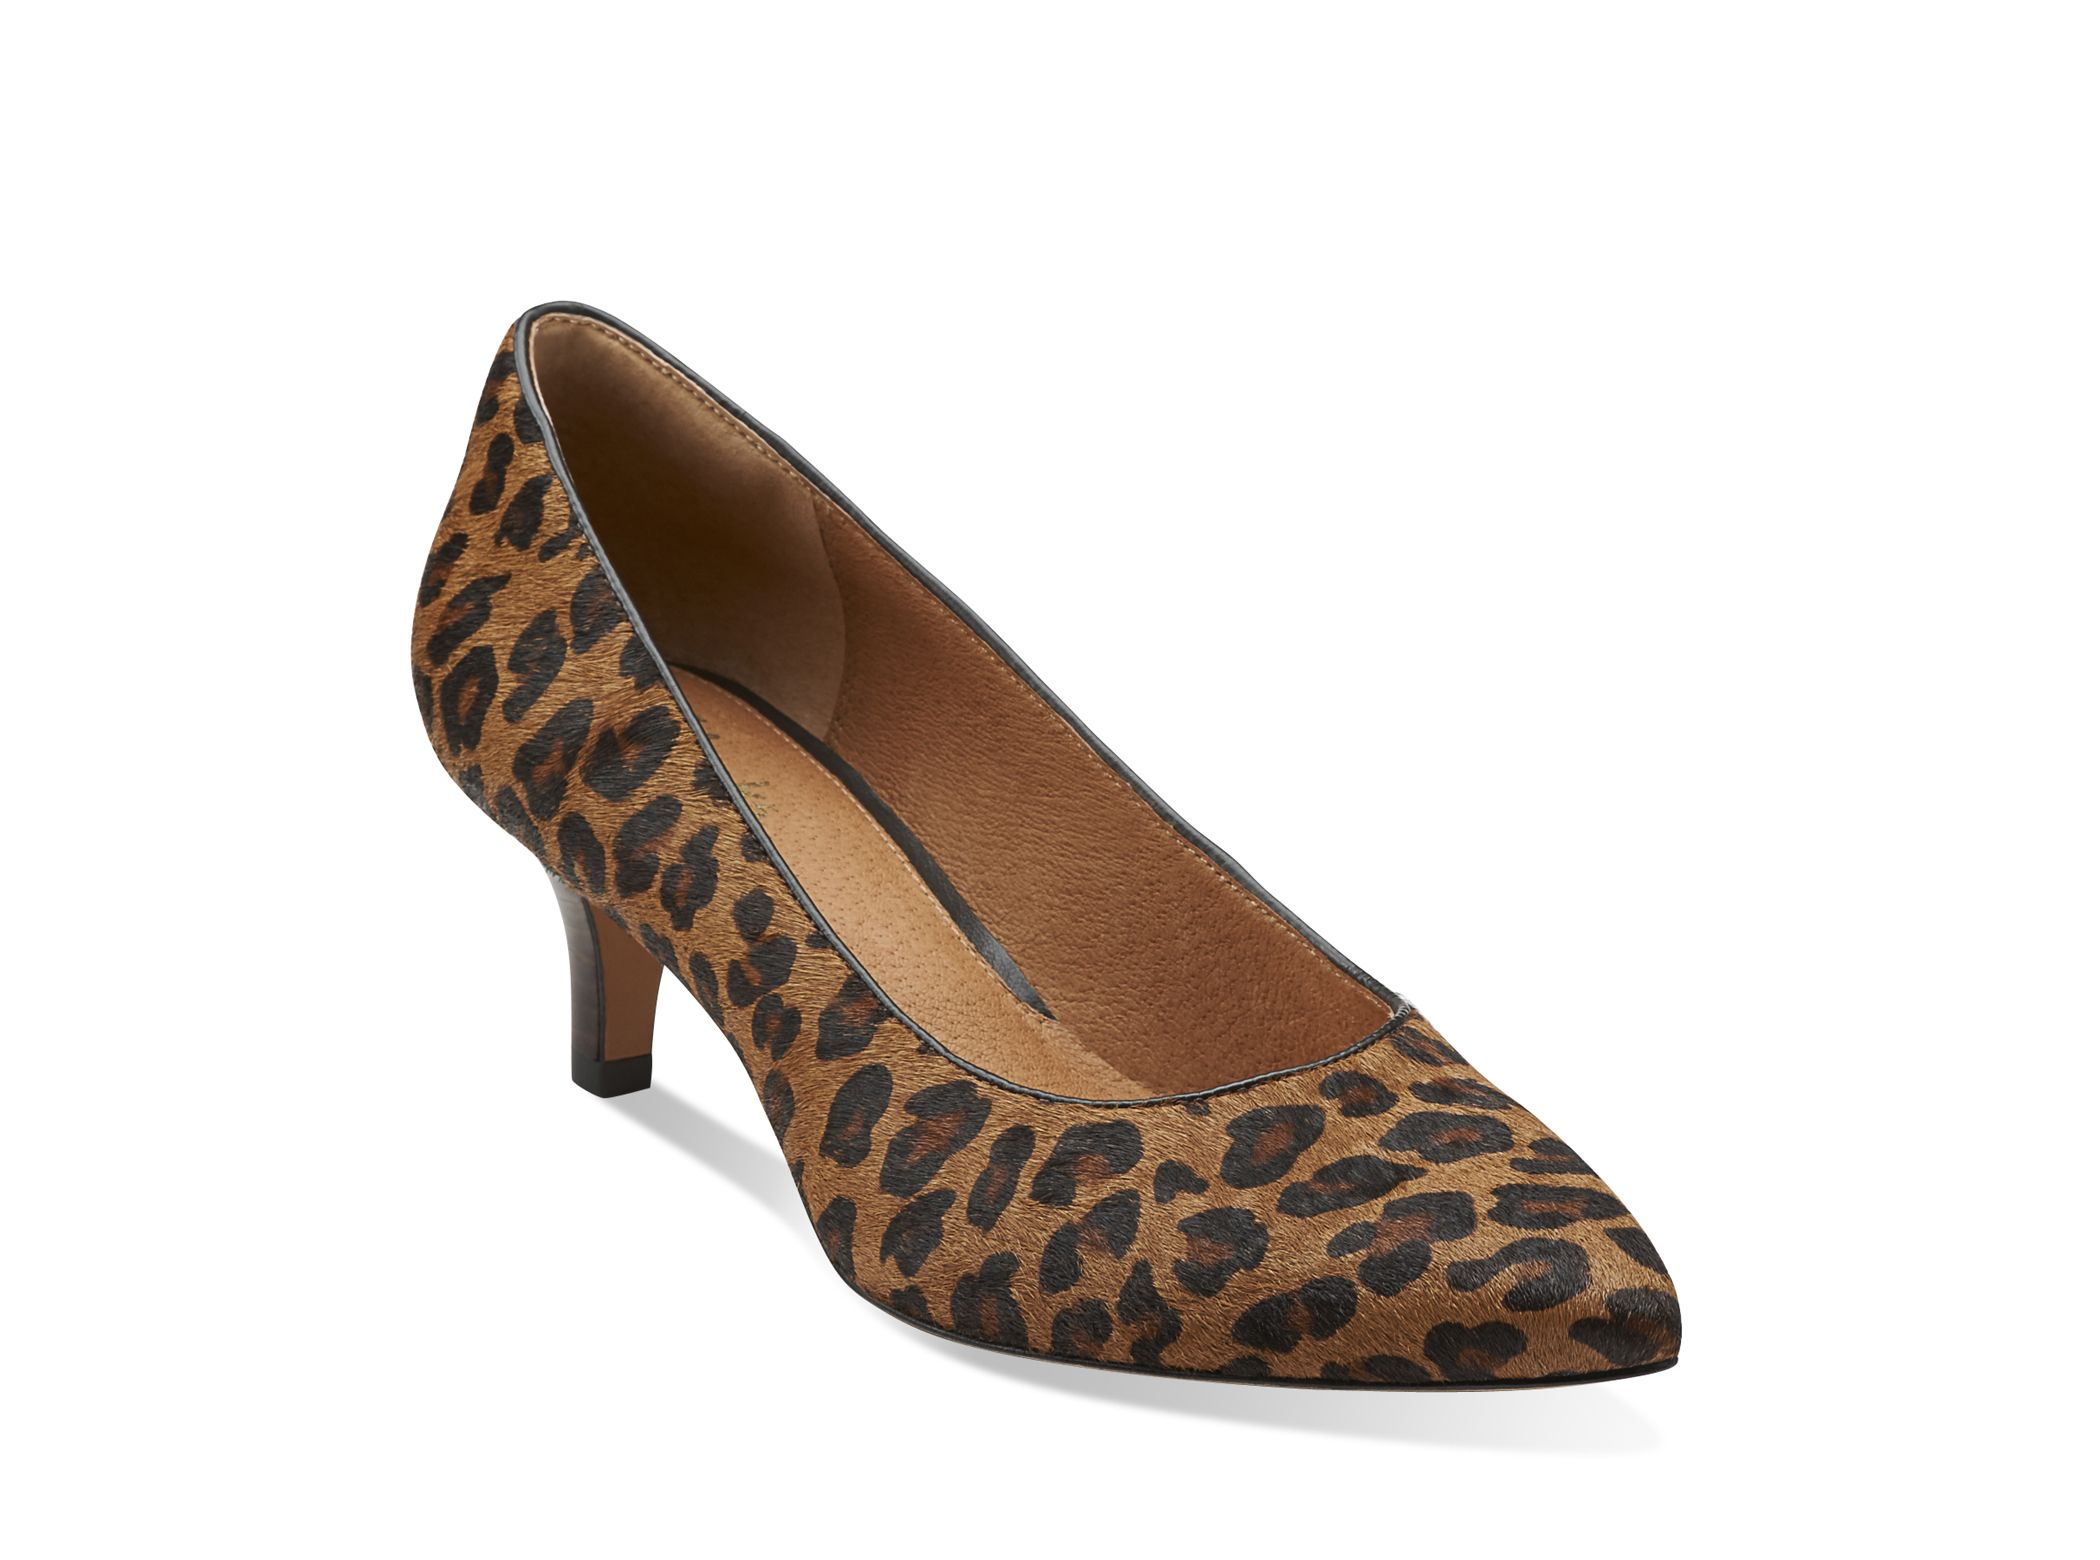 Clarks Shoes Love The Leopard Print And The Kitten Heel Shoes Women Heels Dress Shoes Womens Womens Heels